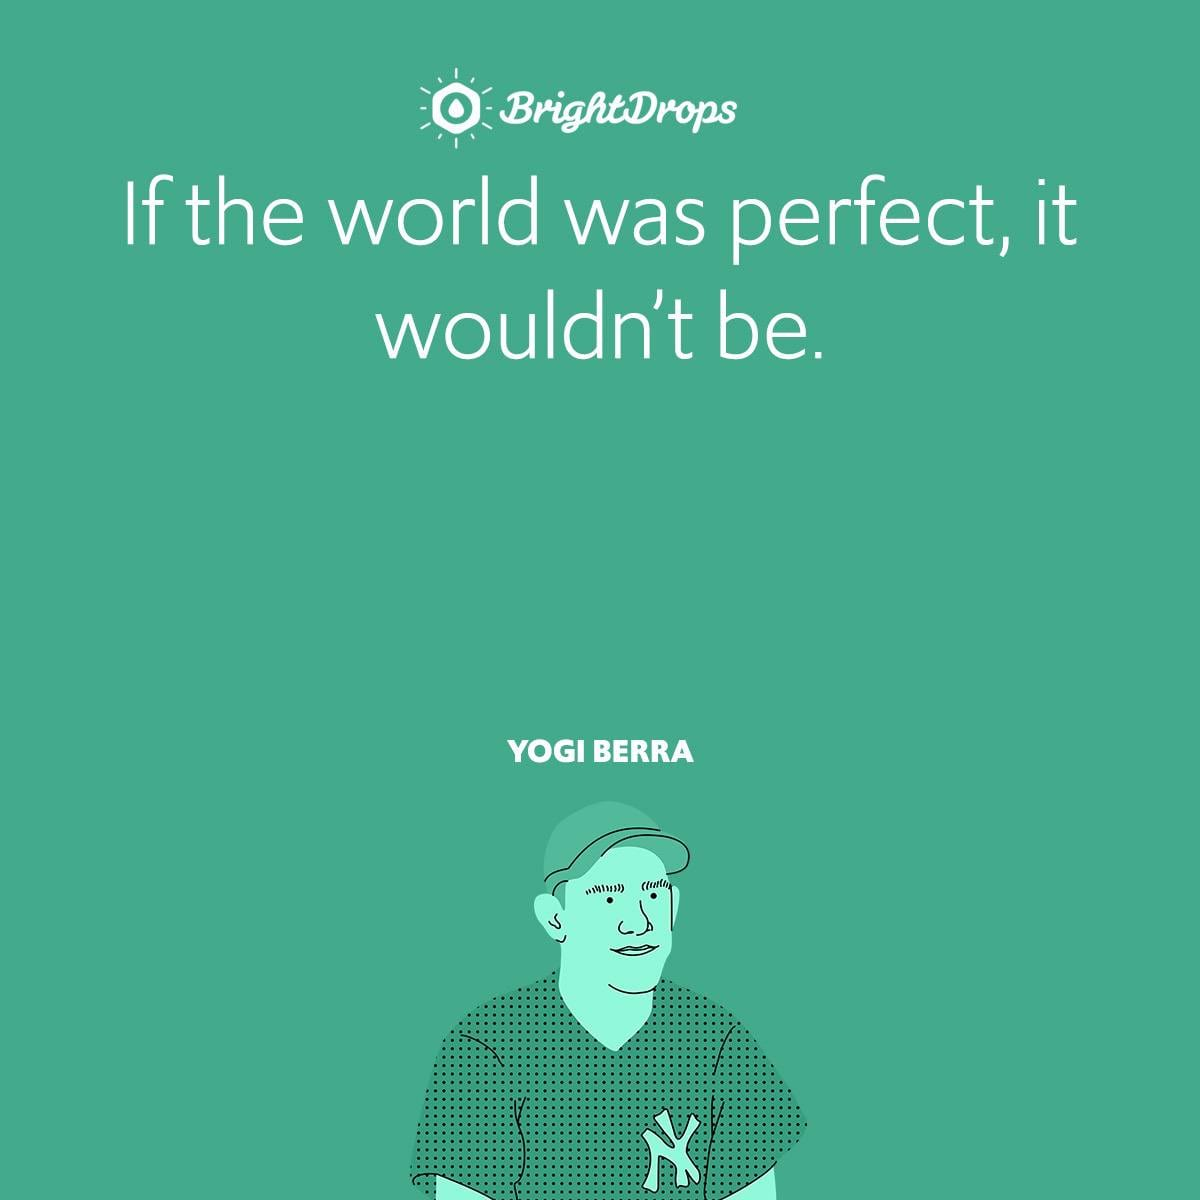 If the world was perfect, it wouldn't be.